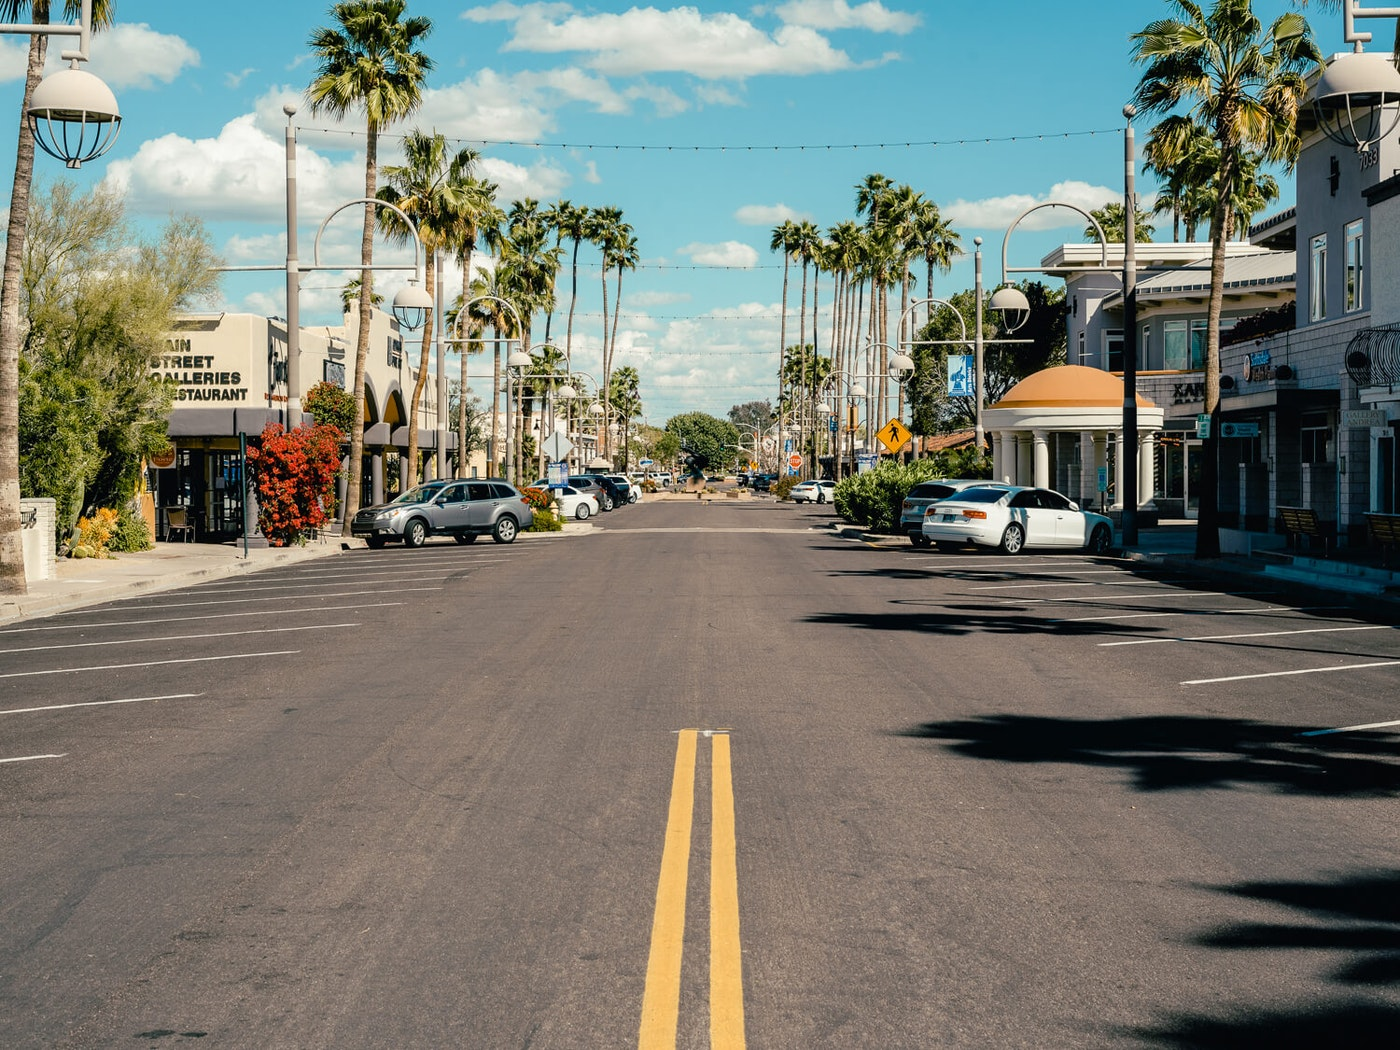 All photos of Tempe, Scottsdale, and Phoenix social distancing provided by Jake Hines